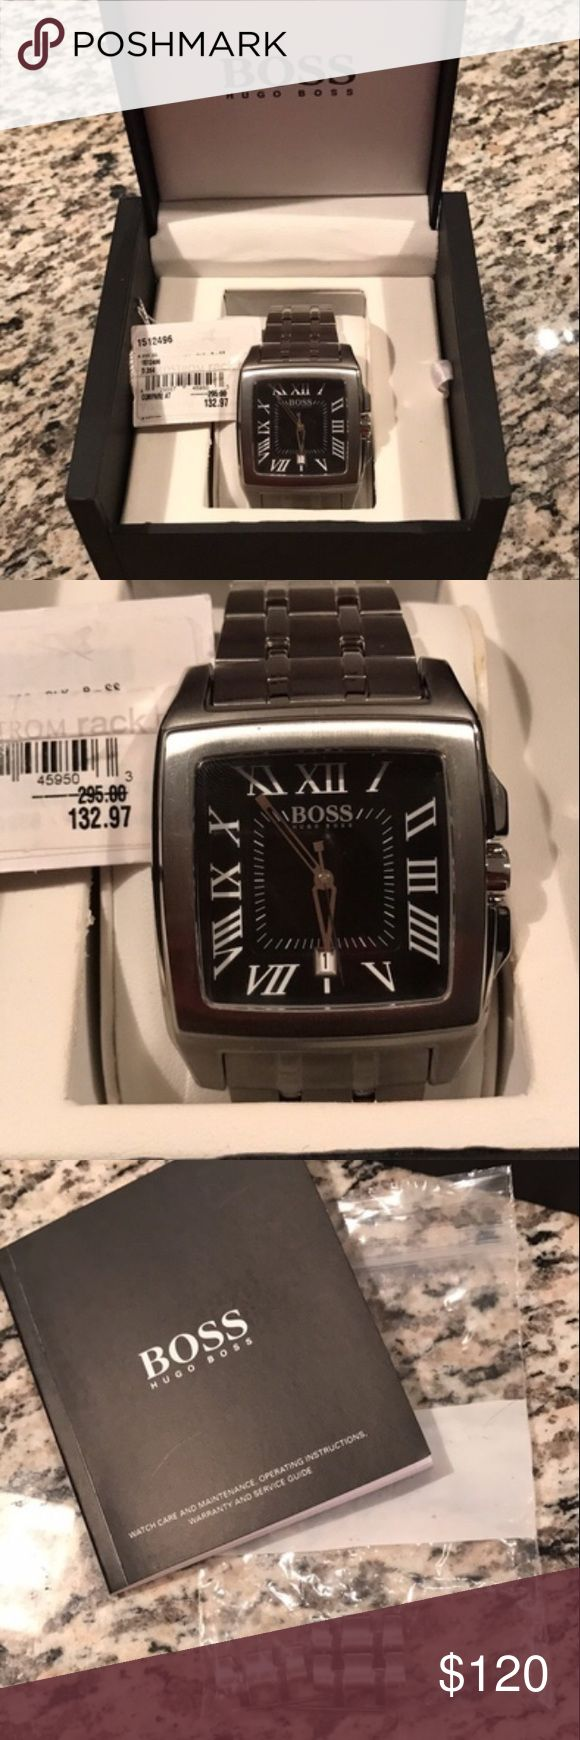 Hugo Boss Men's watch Brand new never worn Hugo Boss watch! Includes original box, sales tag, instruction manual, and extra links. 😎 Hugo Boss Accessories Watches